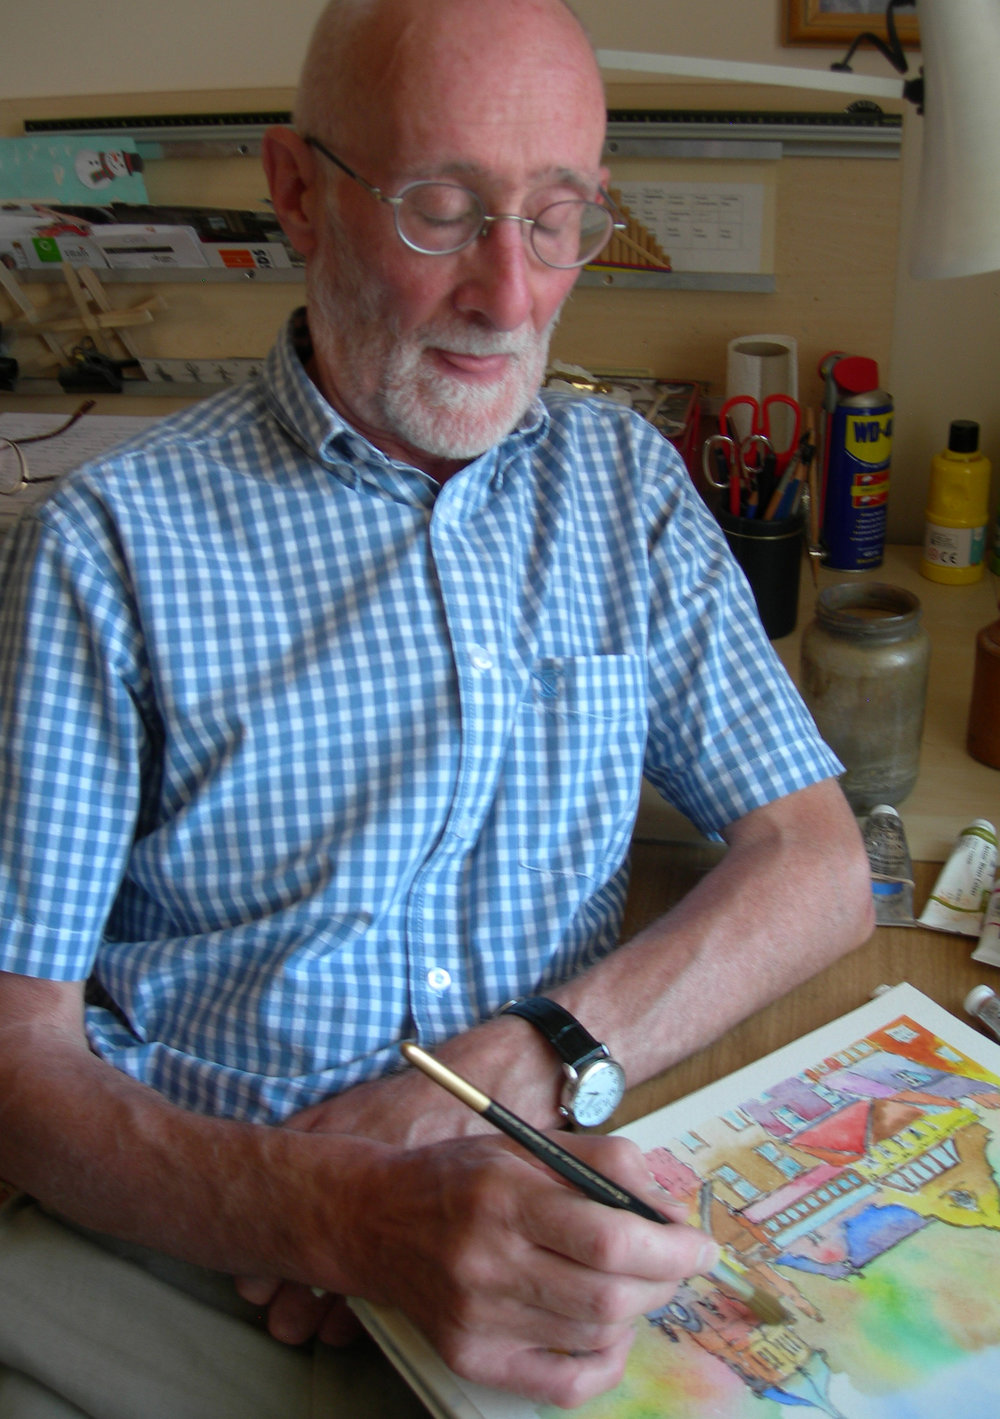 Allan Clifford - made in bradford on avon website - self portrait.jpg